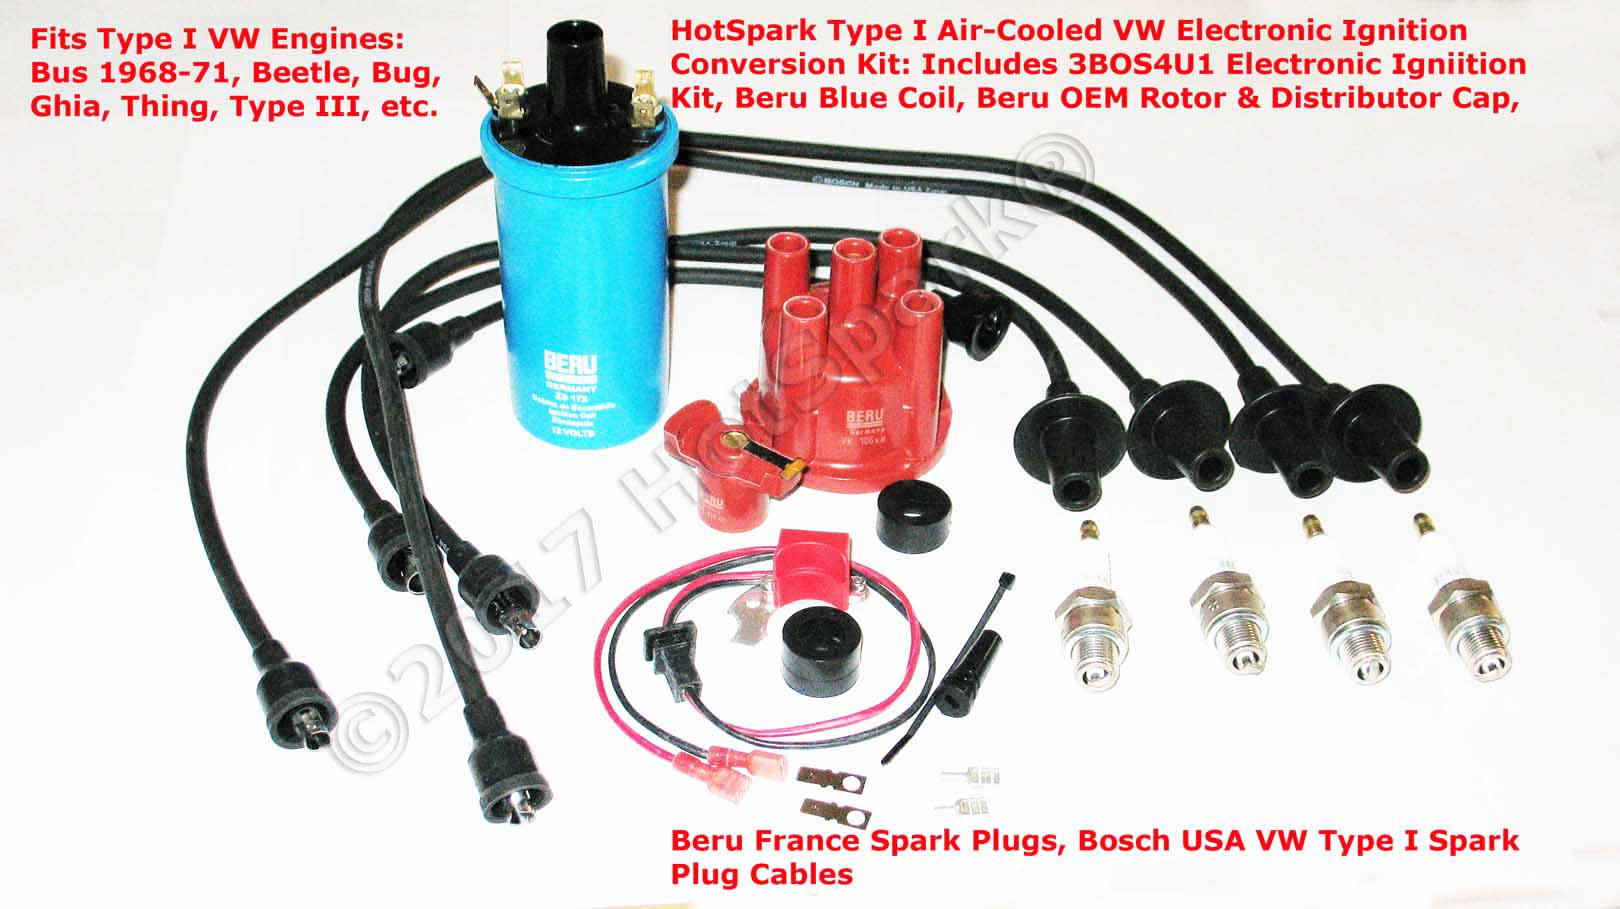 Vw Type 1 Spark Coil Wiring Free Diagram For You Air Cooled Electronic Ignition Conversion Kits Distributors 02 Jetta